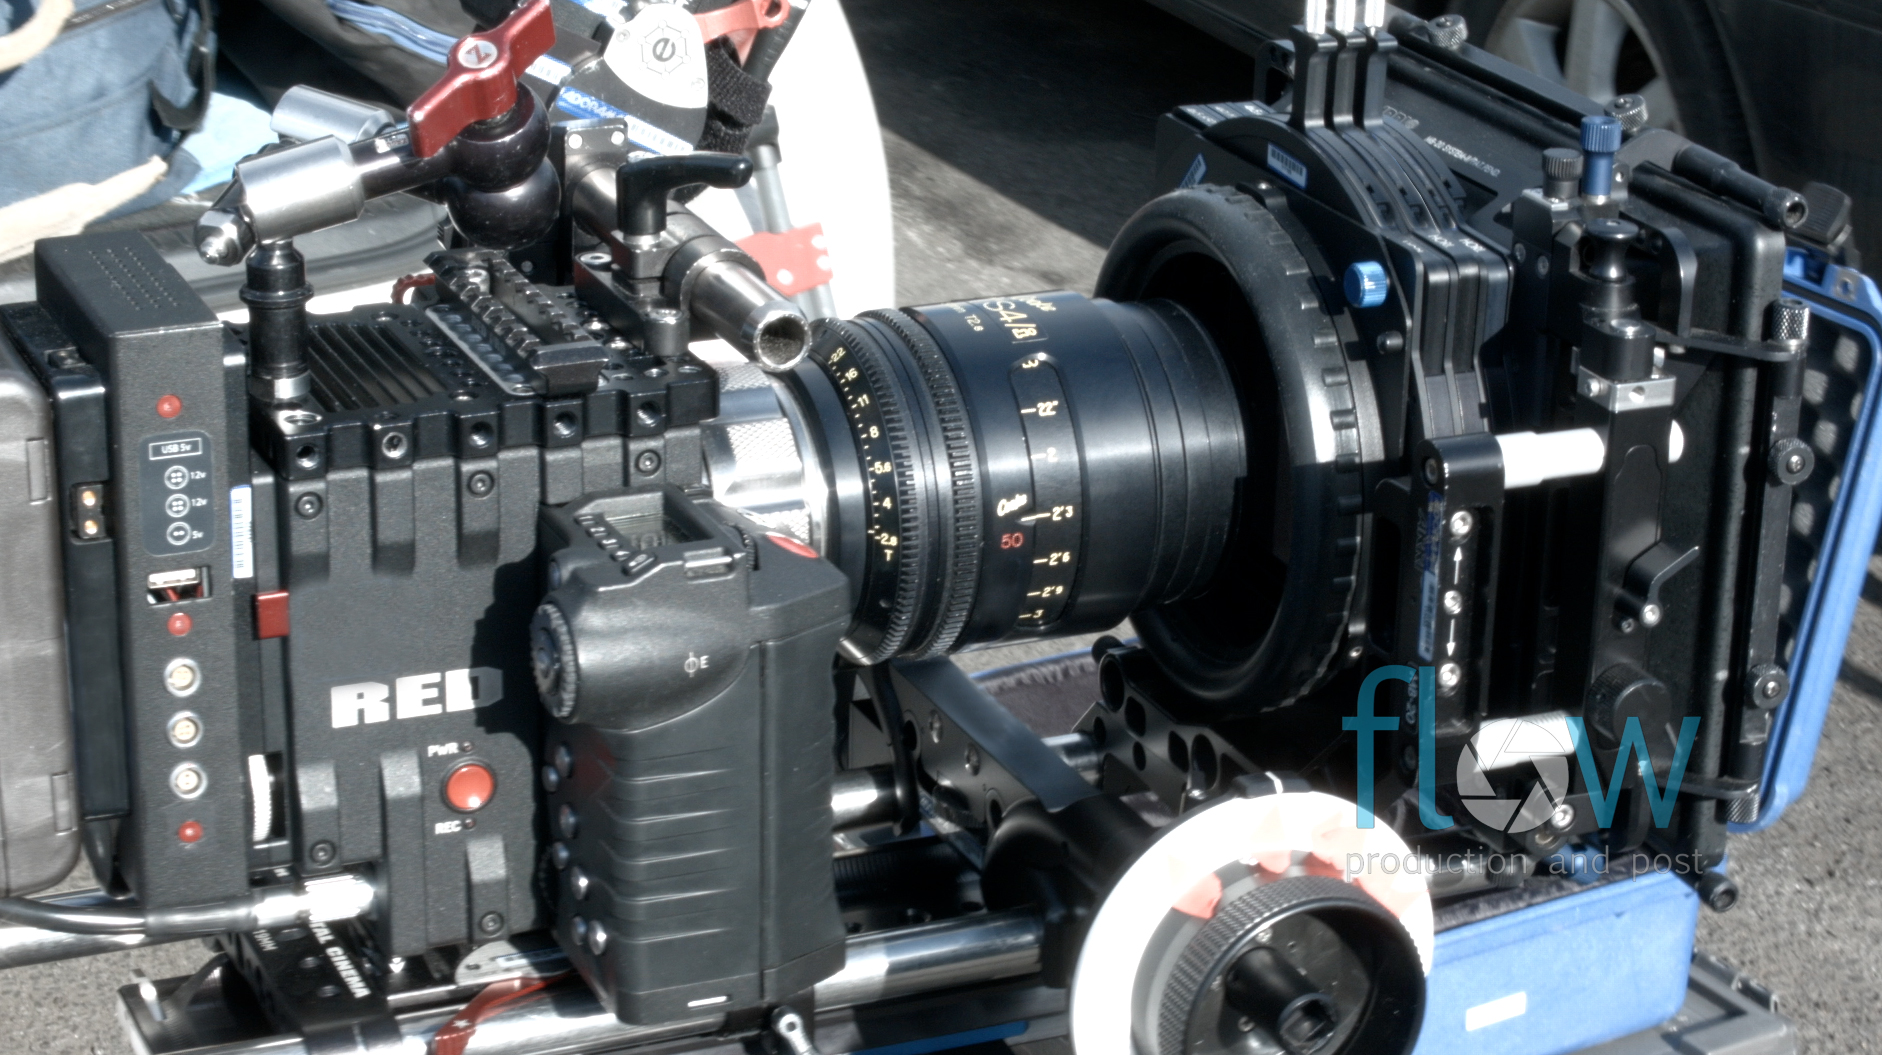 Complete commercial production services